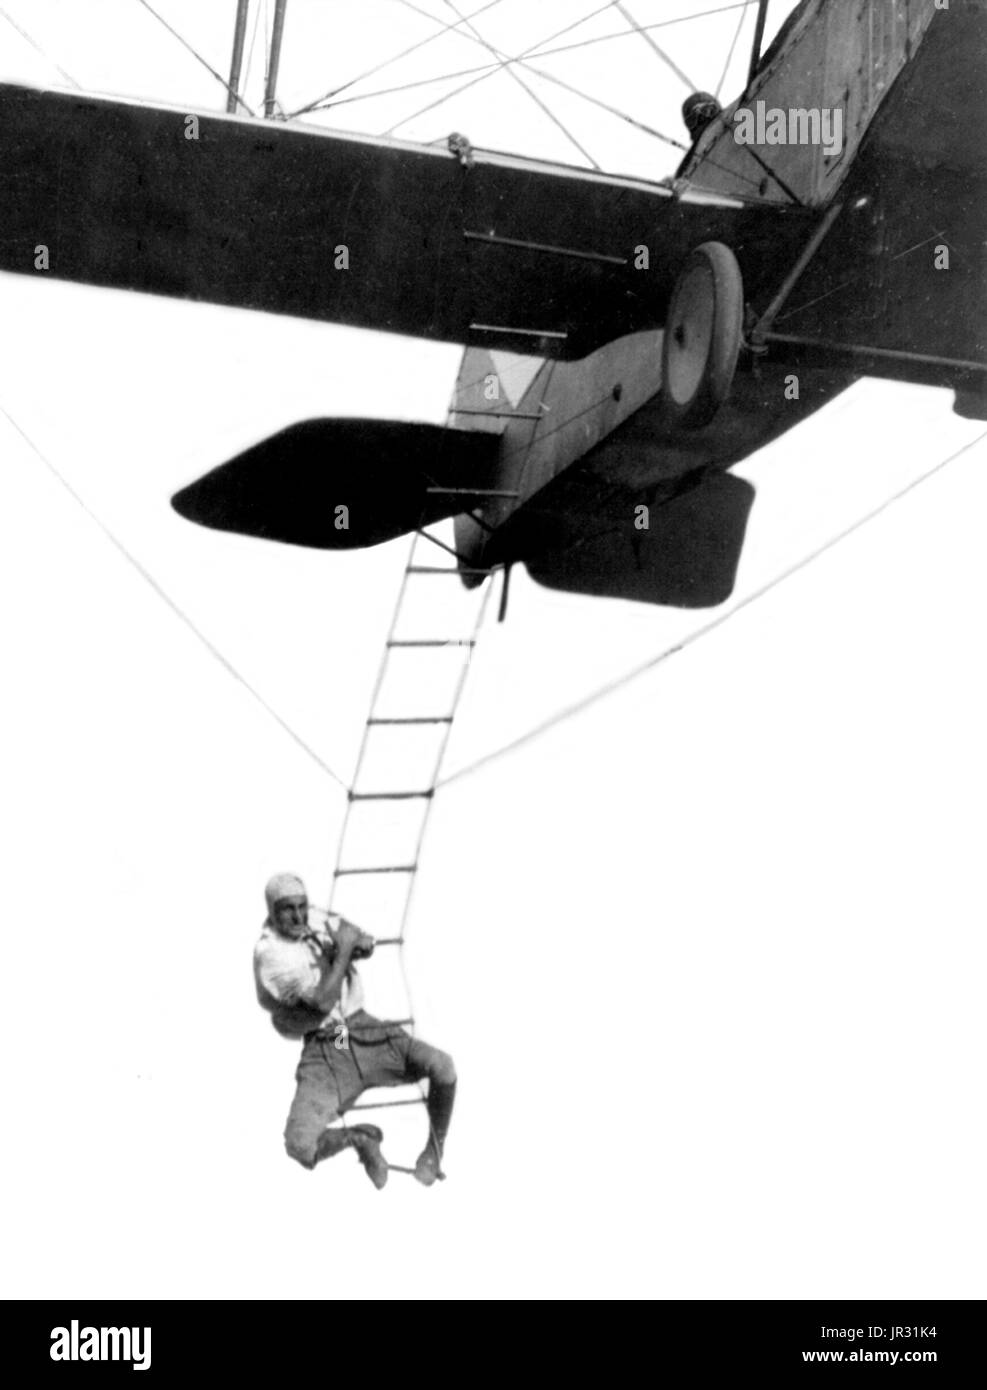 'Fearless Freddie', a Hollywood stunt man, clinging to a rope ladder slung from a plane flown by A.M. Maltrup, about to drop into automobile below: automobile not shown. Fredrick M. Lund (August 11, 1897 - October 3, 1931) American daredevil. When WWI was declared, he joined the Air Service and trained at San Antonio. He was sent to the 4th Pursuit Squadron at Toul, France. Stricken with tuberculosis following the war, he returned to the states, got back his strength and joined the Gates Flying Circus as a stunt flyer, working for a while in Hollywood, as a movie double, where he earned the ni - Stock Image